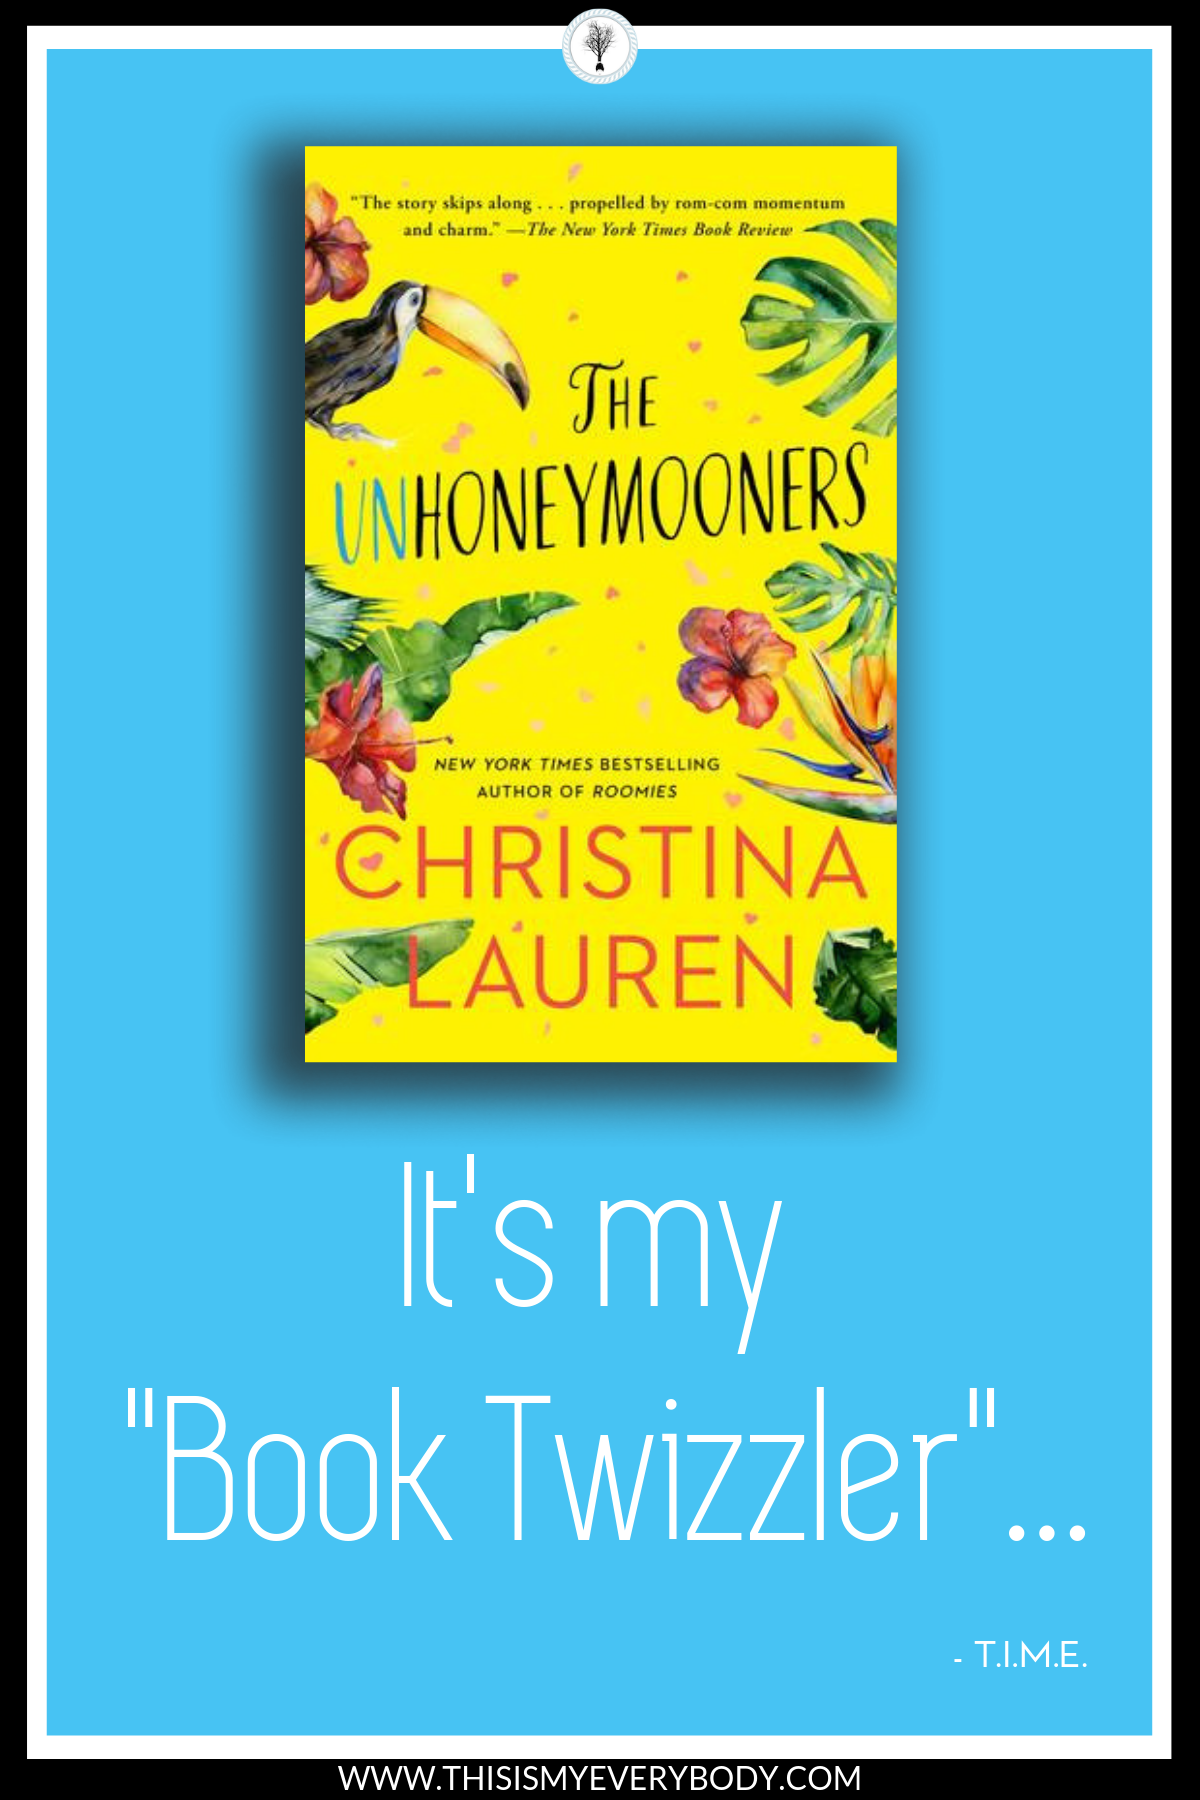 Loaded with crisp dialogue that found me wishing for Christina Lauren's gift of gab when doling out my own comebacks! The Unhoneymooners by Christina Lauren had me laughing out loud at the two main characters (Olive and Ethan) as they find themselves thrown together by bad fortune… or perhaps good fortune after all? | Book Review: The Unhoneymooners by Christina Lauren | This Is My Everybody - Books, Inspiration and Home Ideas